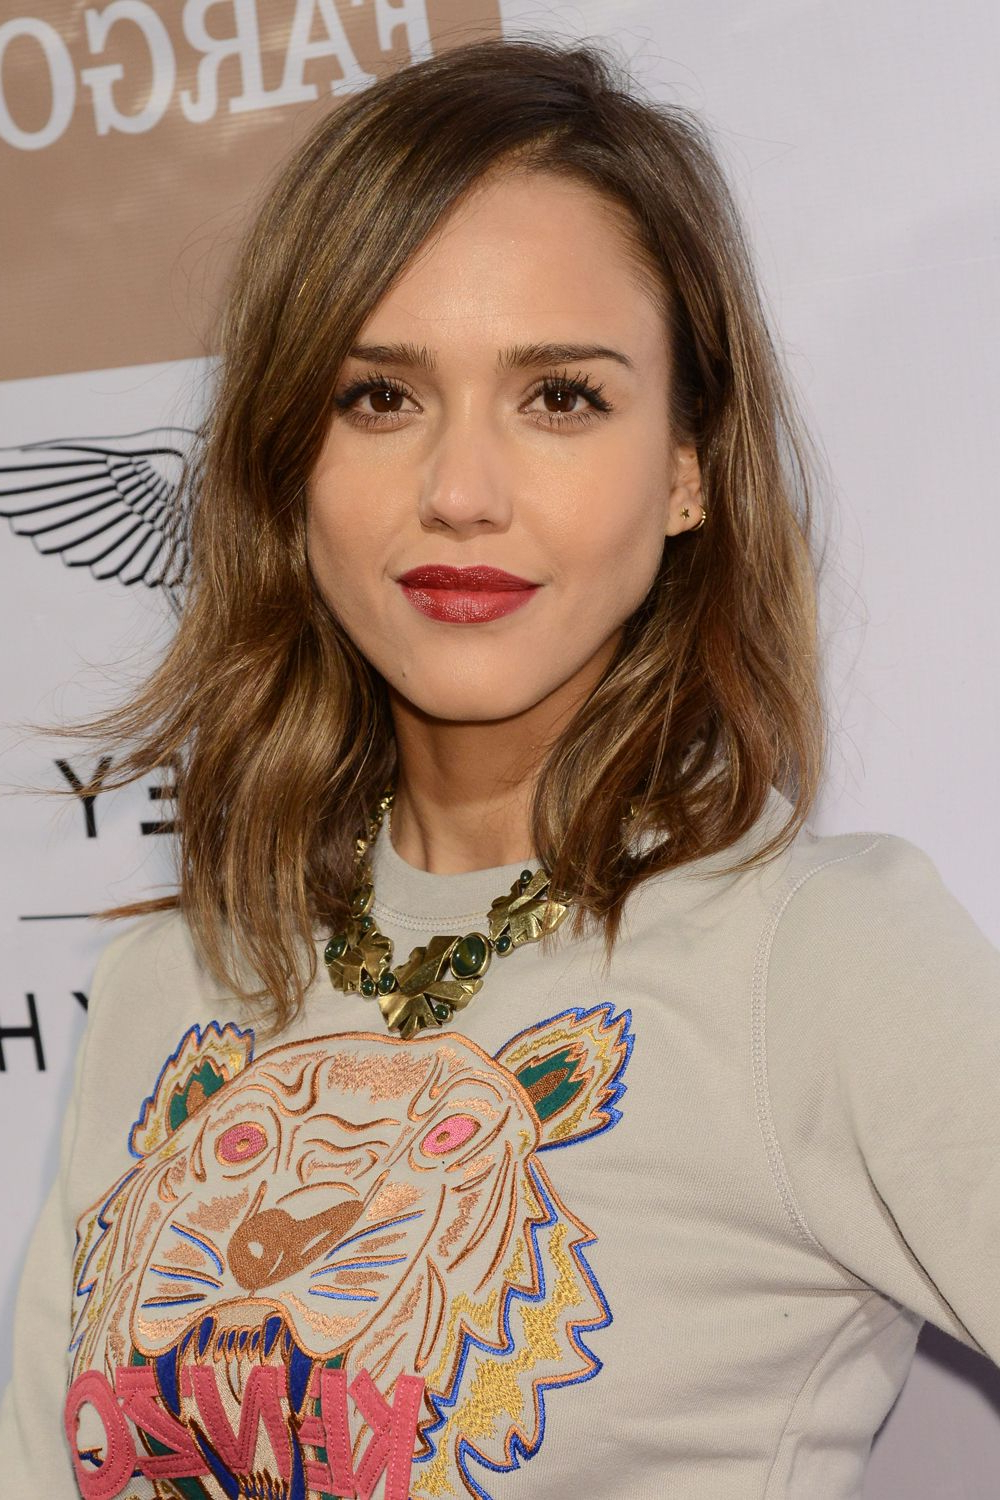 Bob Hairstyles To Inspire You To Go For The Chop | Pinterest | Bob Inside Jessica Alba Short Hairstyles (View 2 of 25)